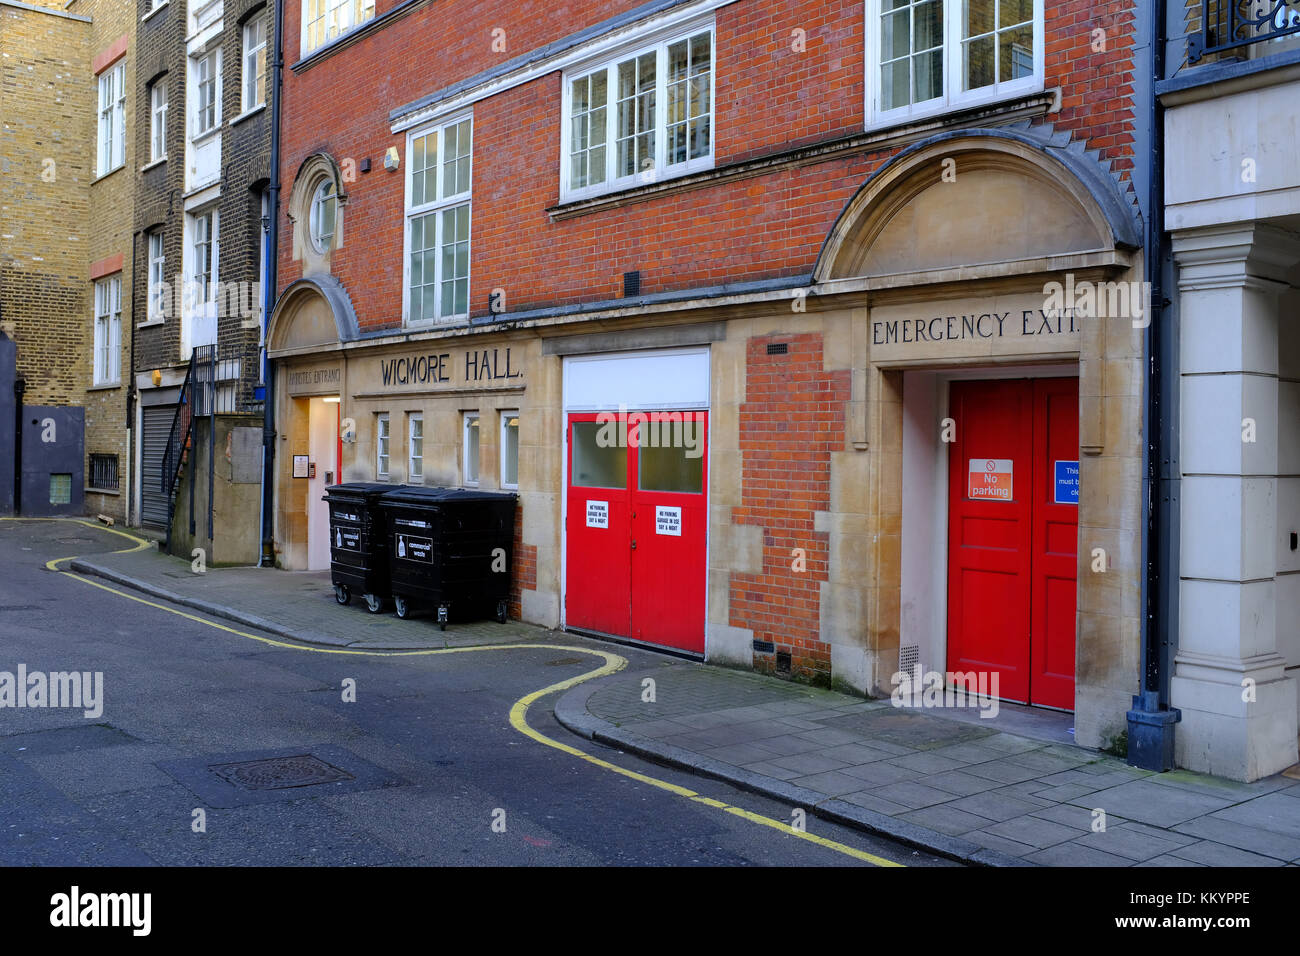 Wigmore Hall Artistes Entrance, Welbeck way, Marylebone, London UK Stock Photo